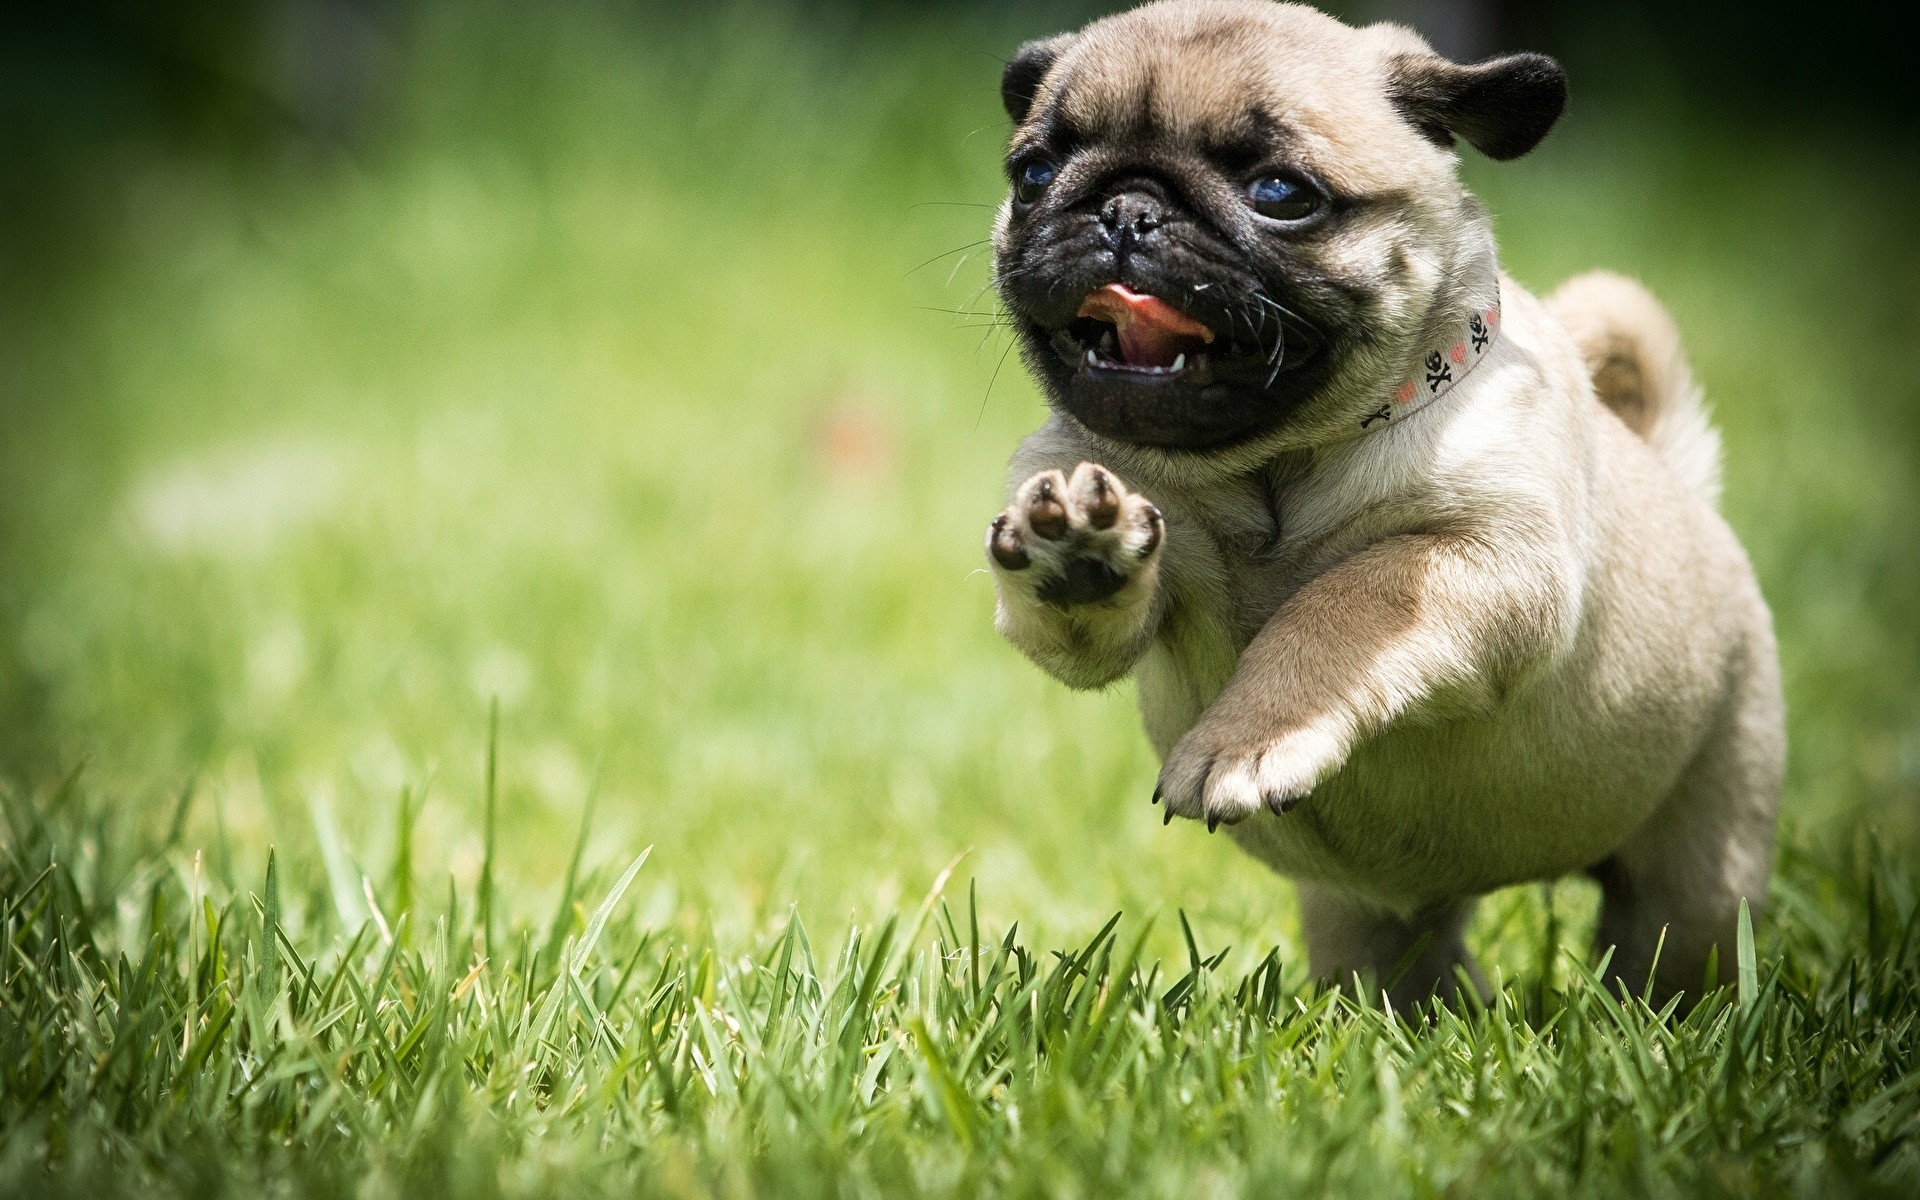 Cute Puppy Wallpapers For Iphone Pug Puppy Wallpaper 66 Images